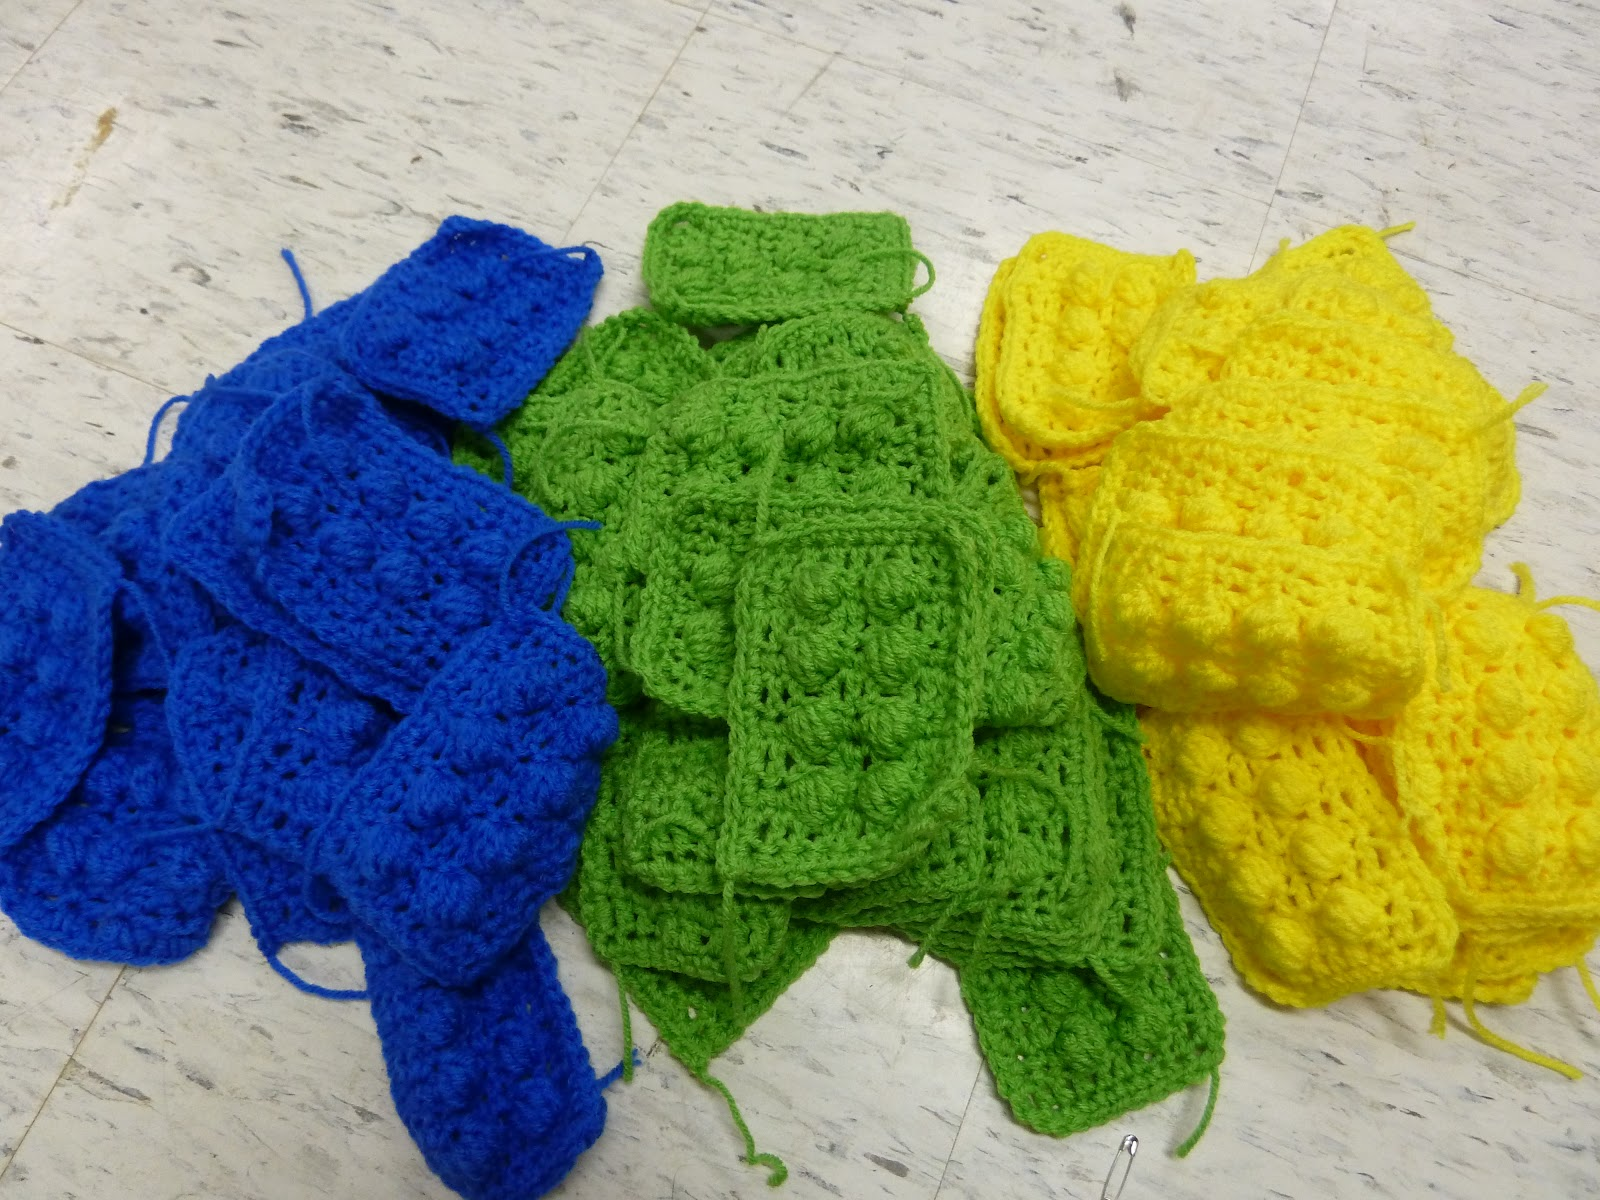 Crochet Lego Blanket : Knotted-Thread: Crochet Lego Blanket